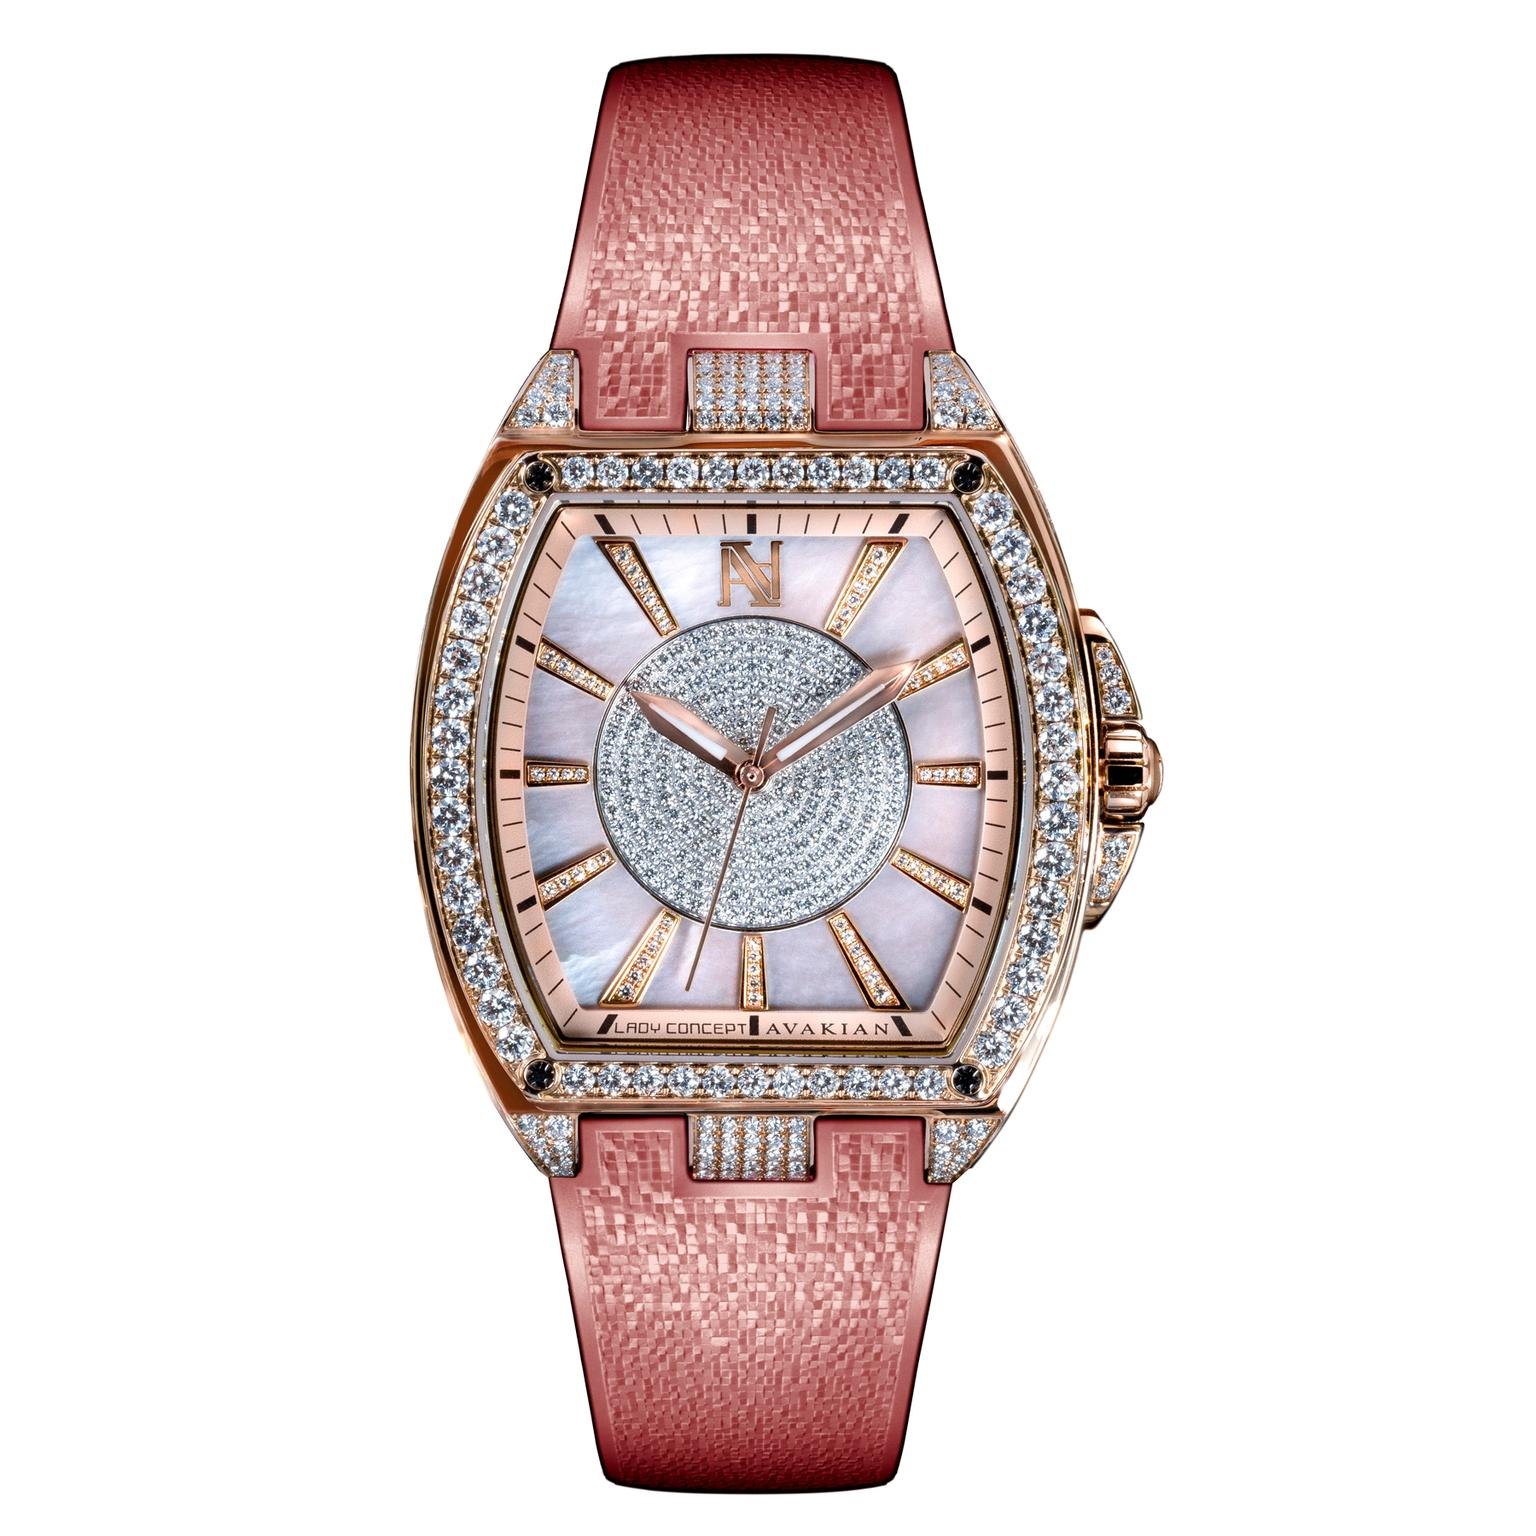 Avakian Lady Concept Pink watch